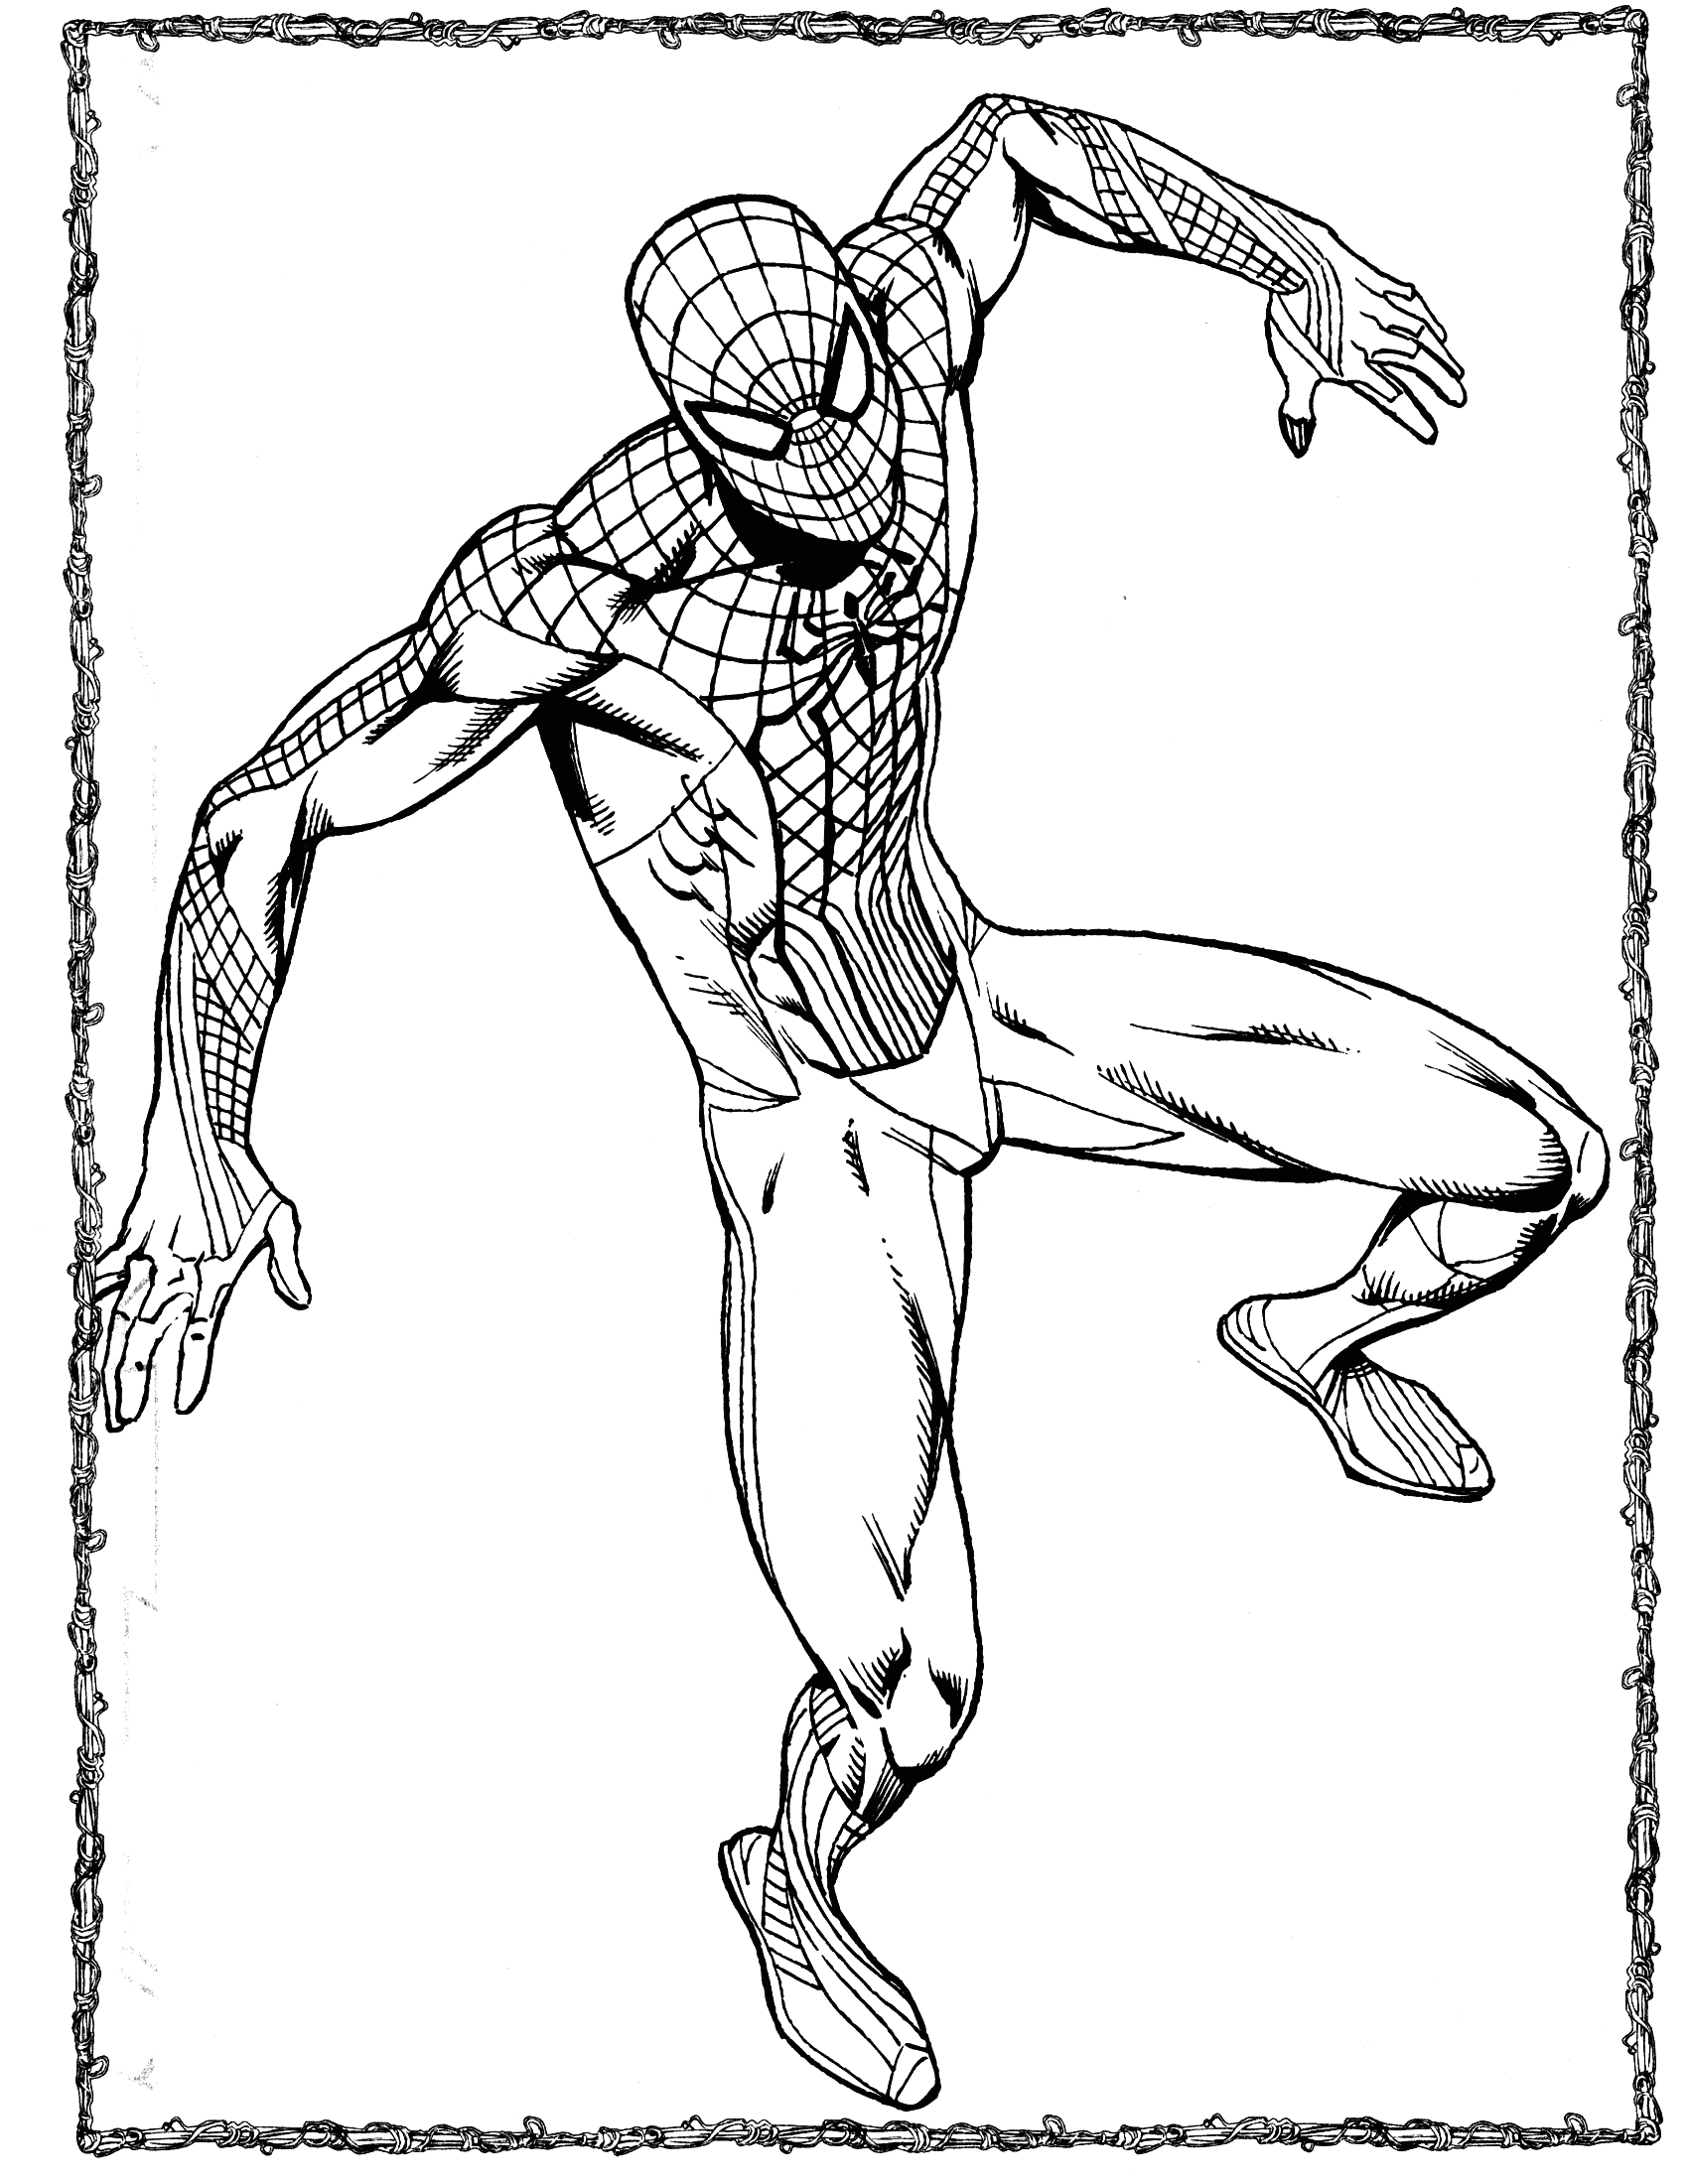 The Amazing Spider Man 2 Coloring Pages the Amazing Spider Man 2 Coloring Pages at Getcolorings